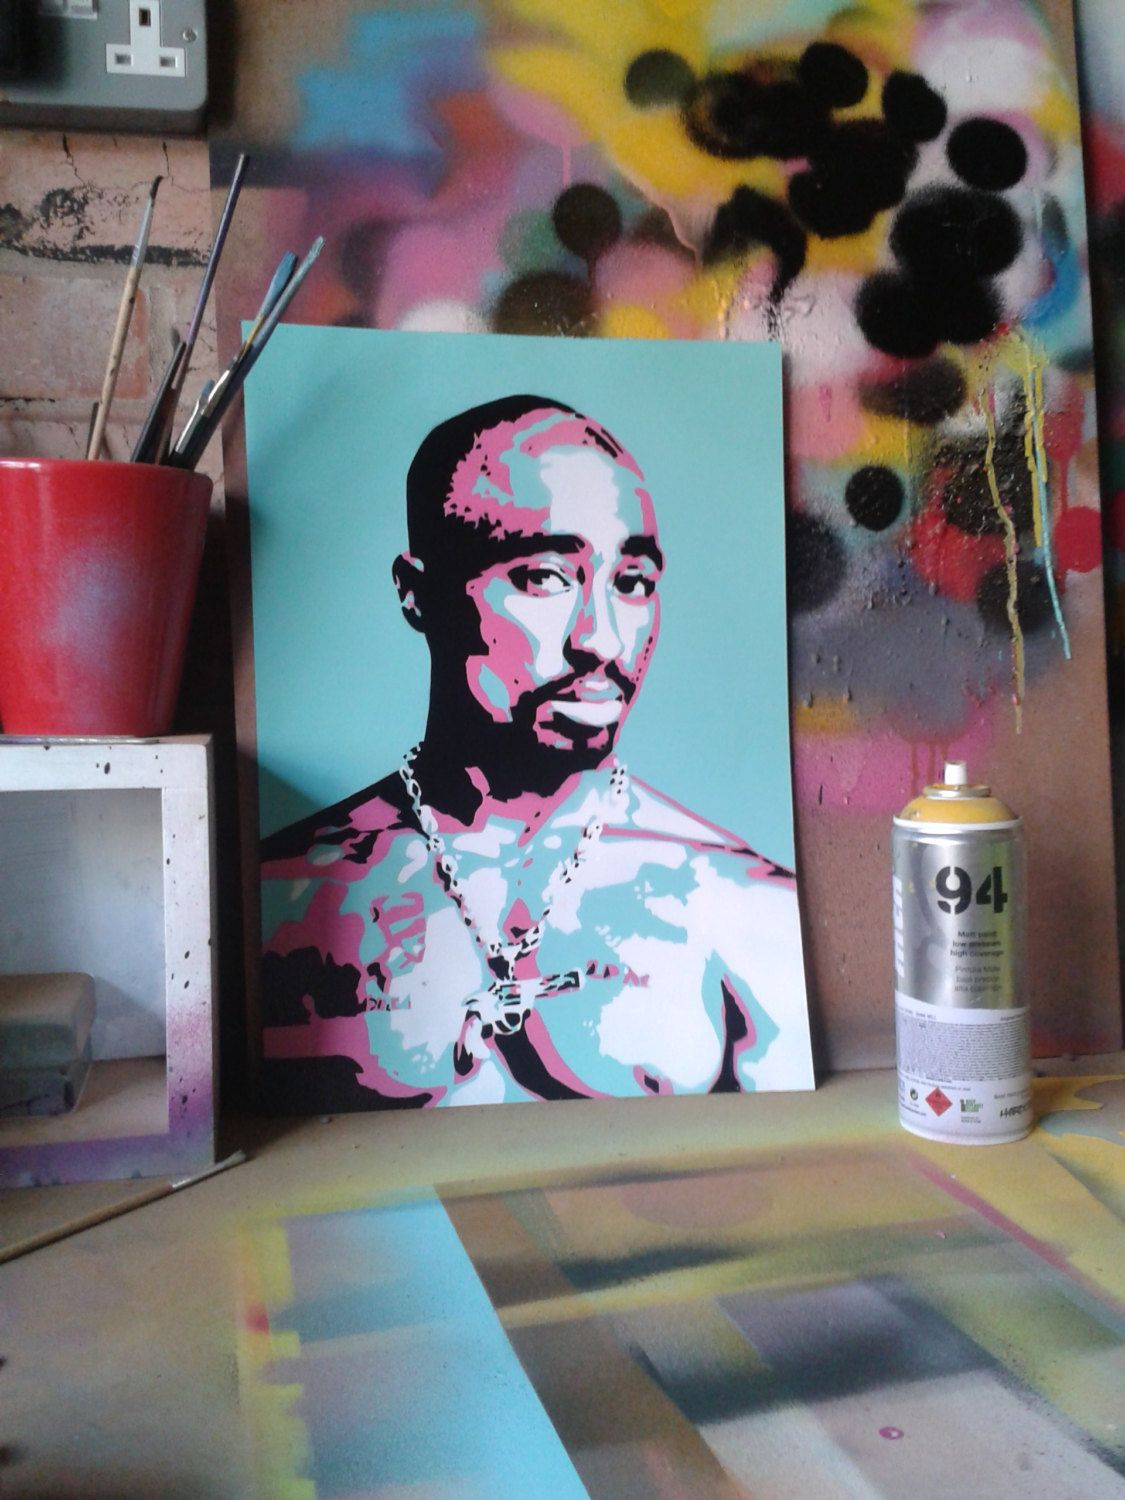 2pac painting on cardstencilsspray by abstractgraffitishop on etsy 50 00